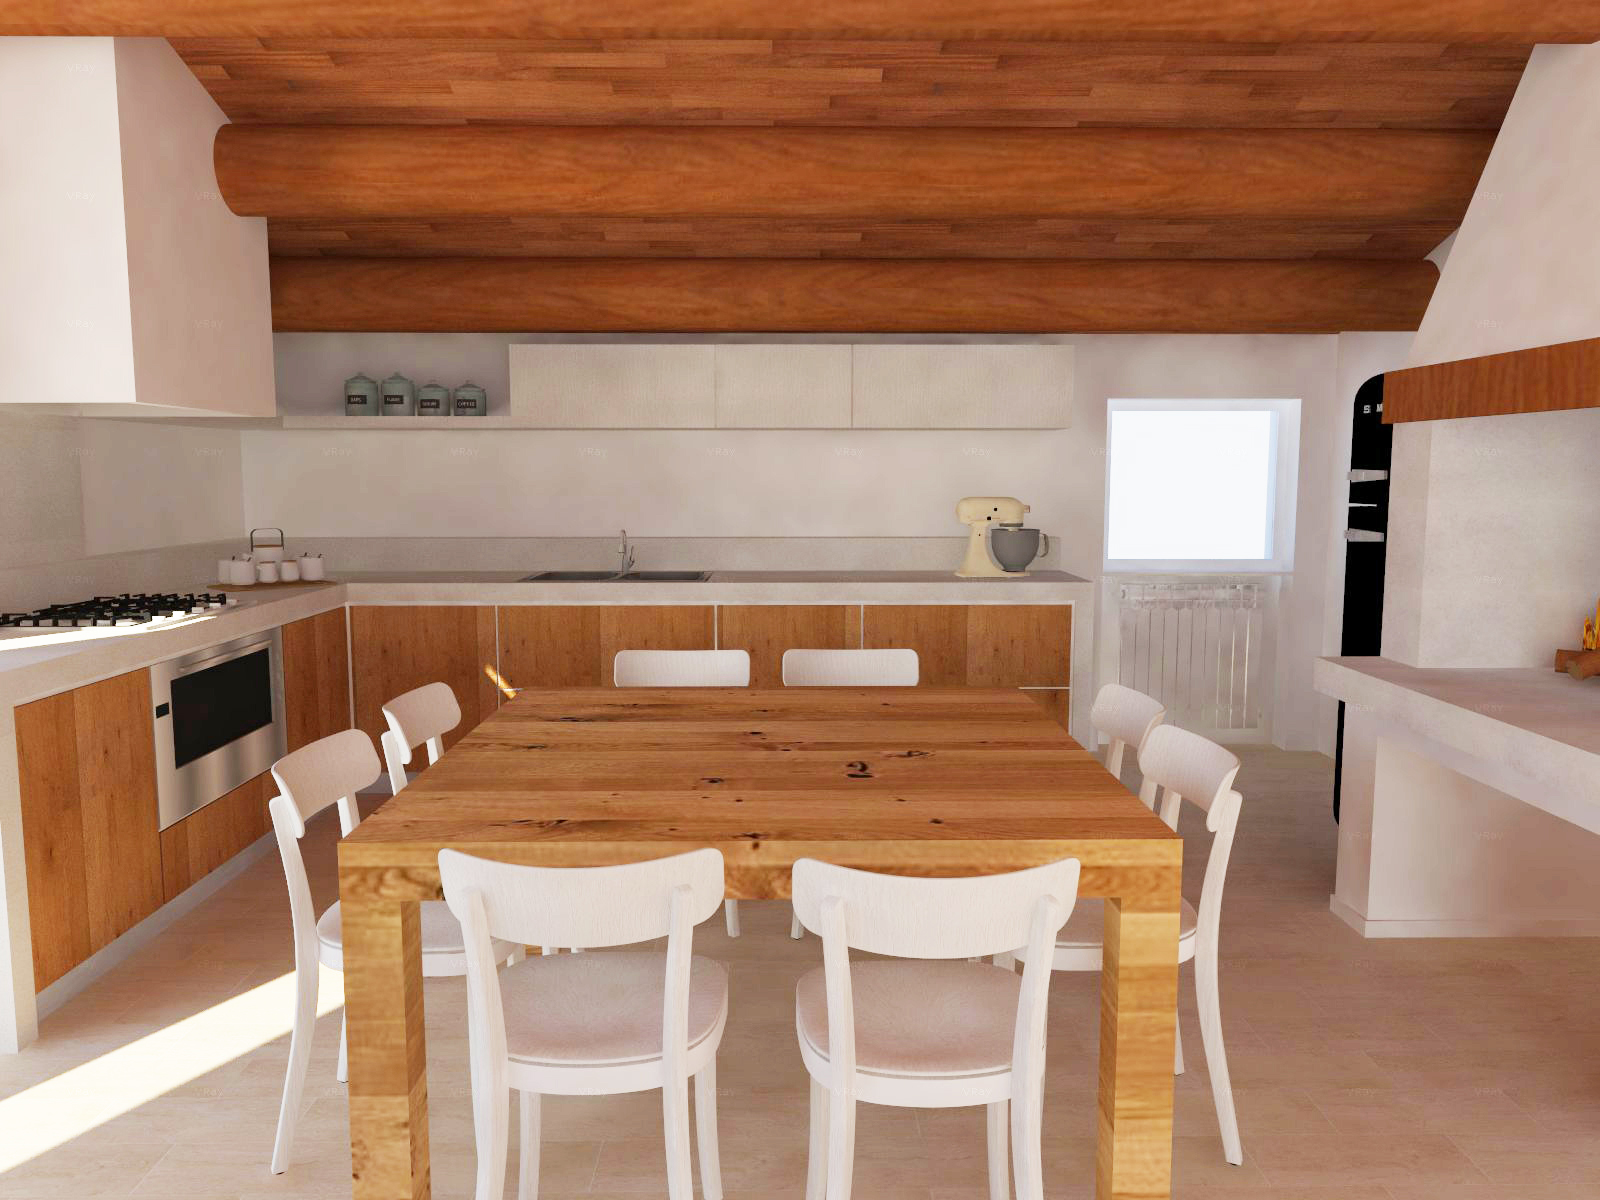 Cucina angolare sweet home d